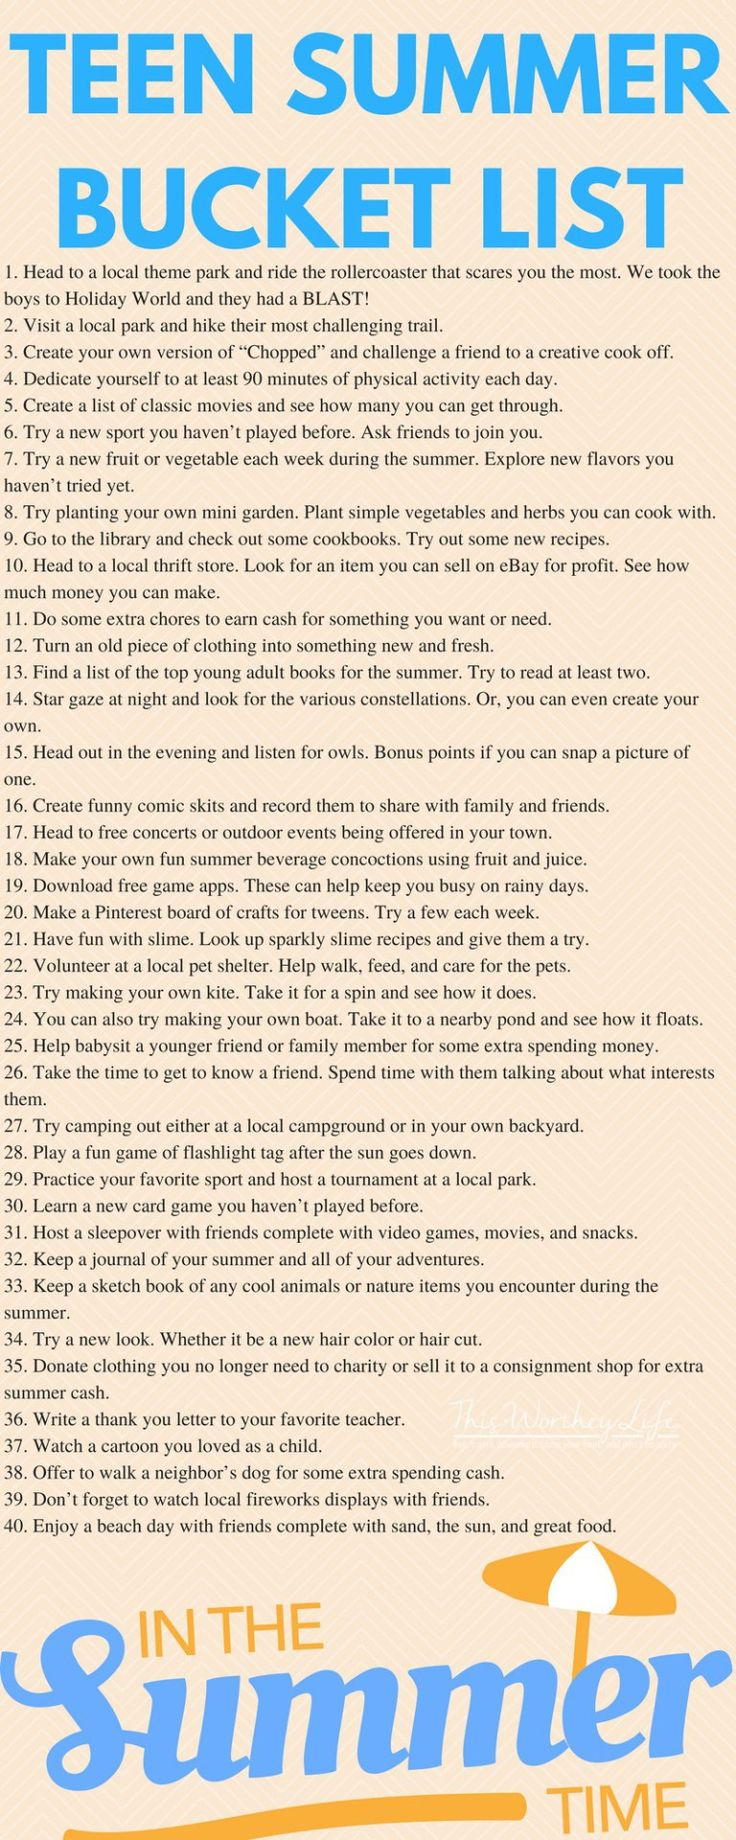 Summer Bucket List for Teens